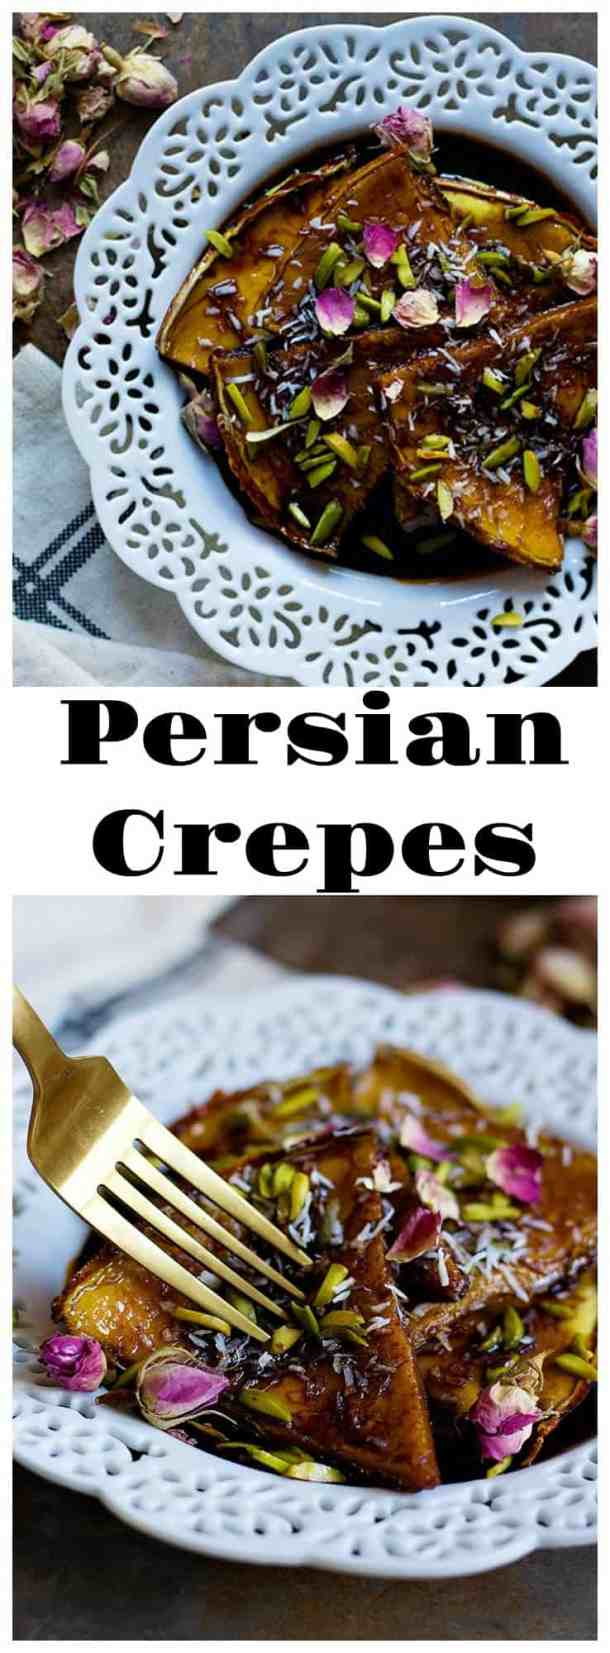 This Persian Homemade Crepe Recipe is one you'll want to remember. Cooked with molasses, this crepe is different from everything you've had before.